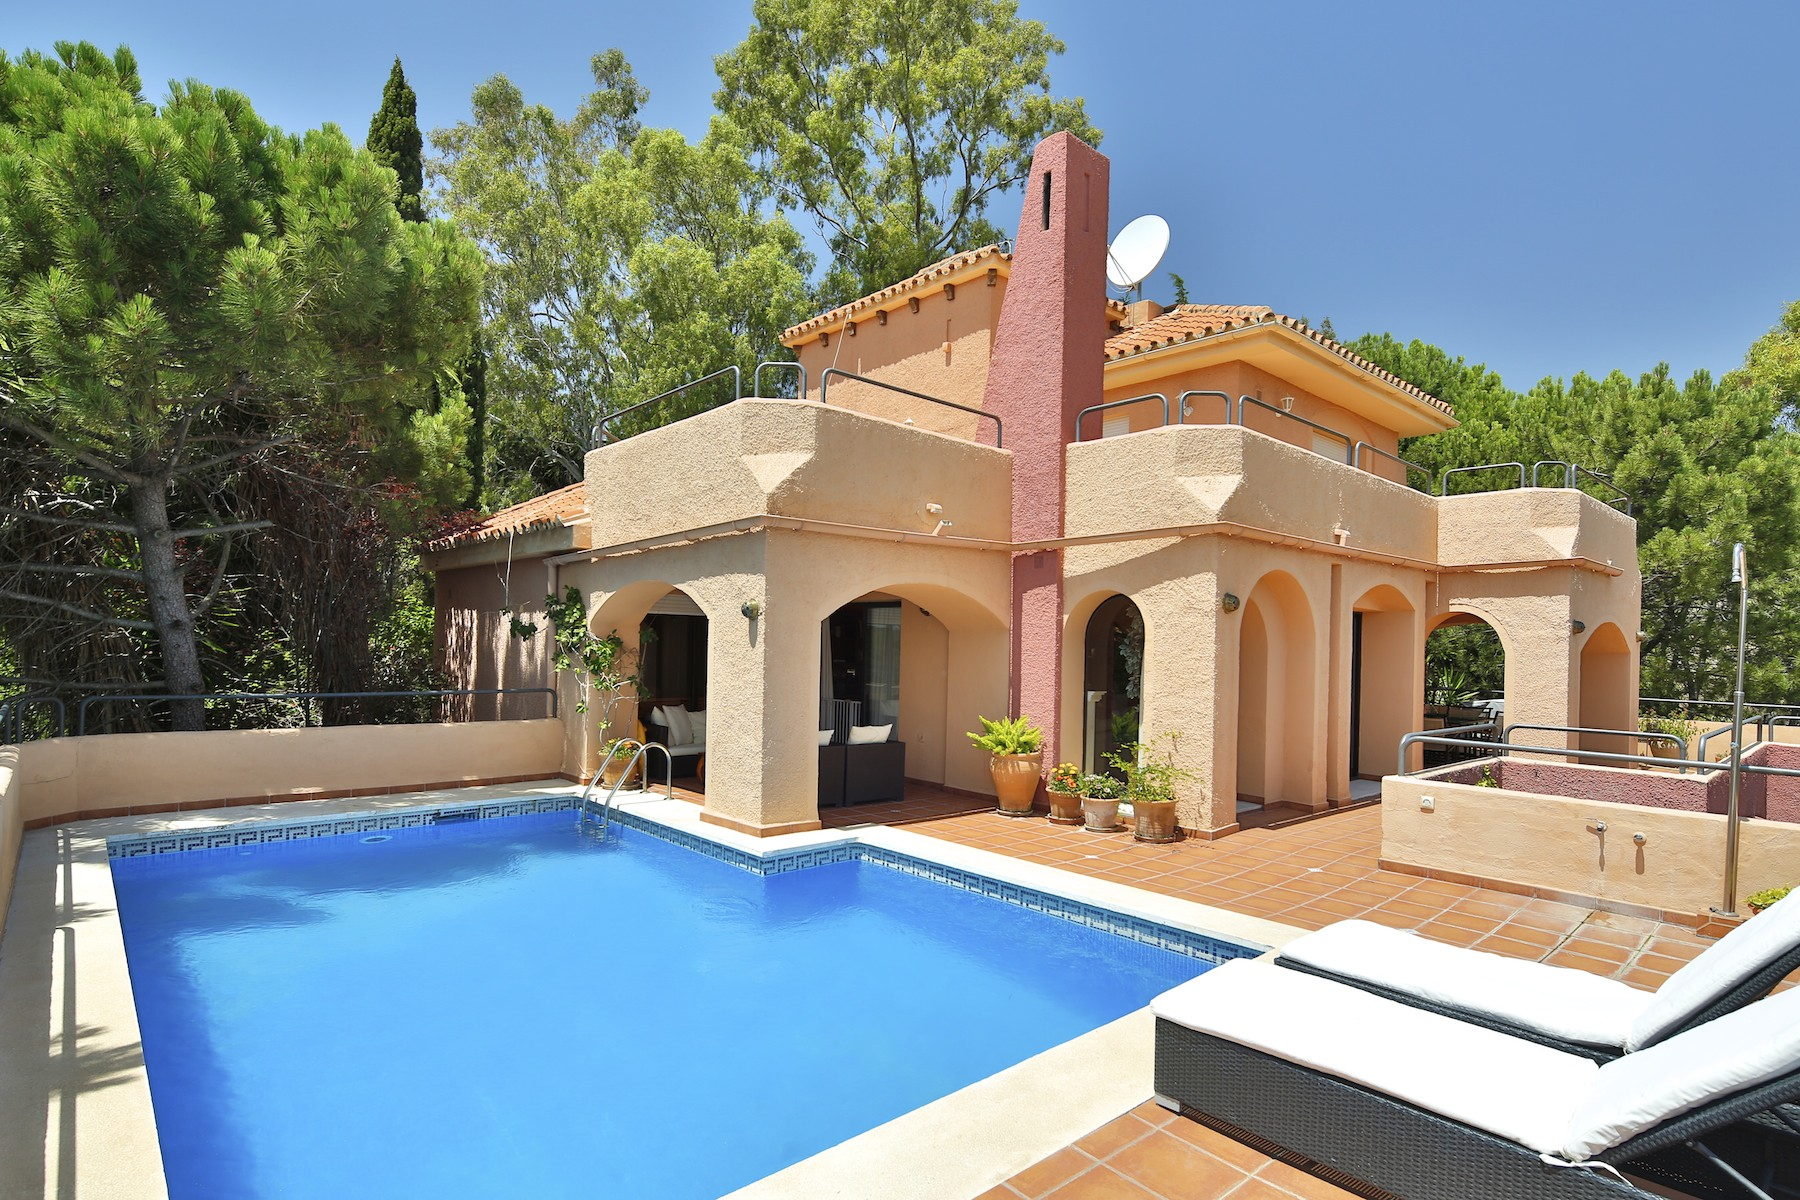 Single Family Home for Sale at Charming villa in a gated community of the golf valley Nueva Andalucia Other Andalucia, Andalucia, 29660 Spain